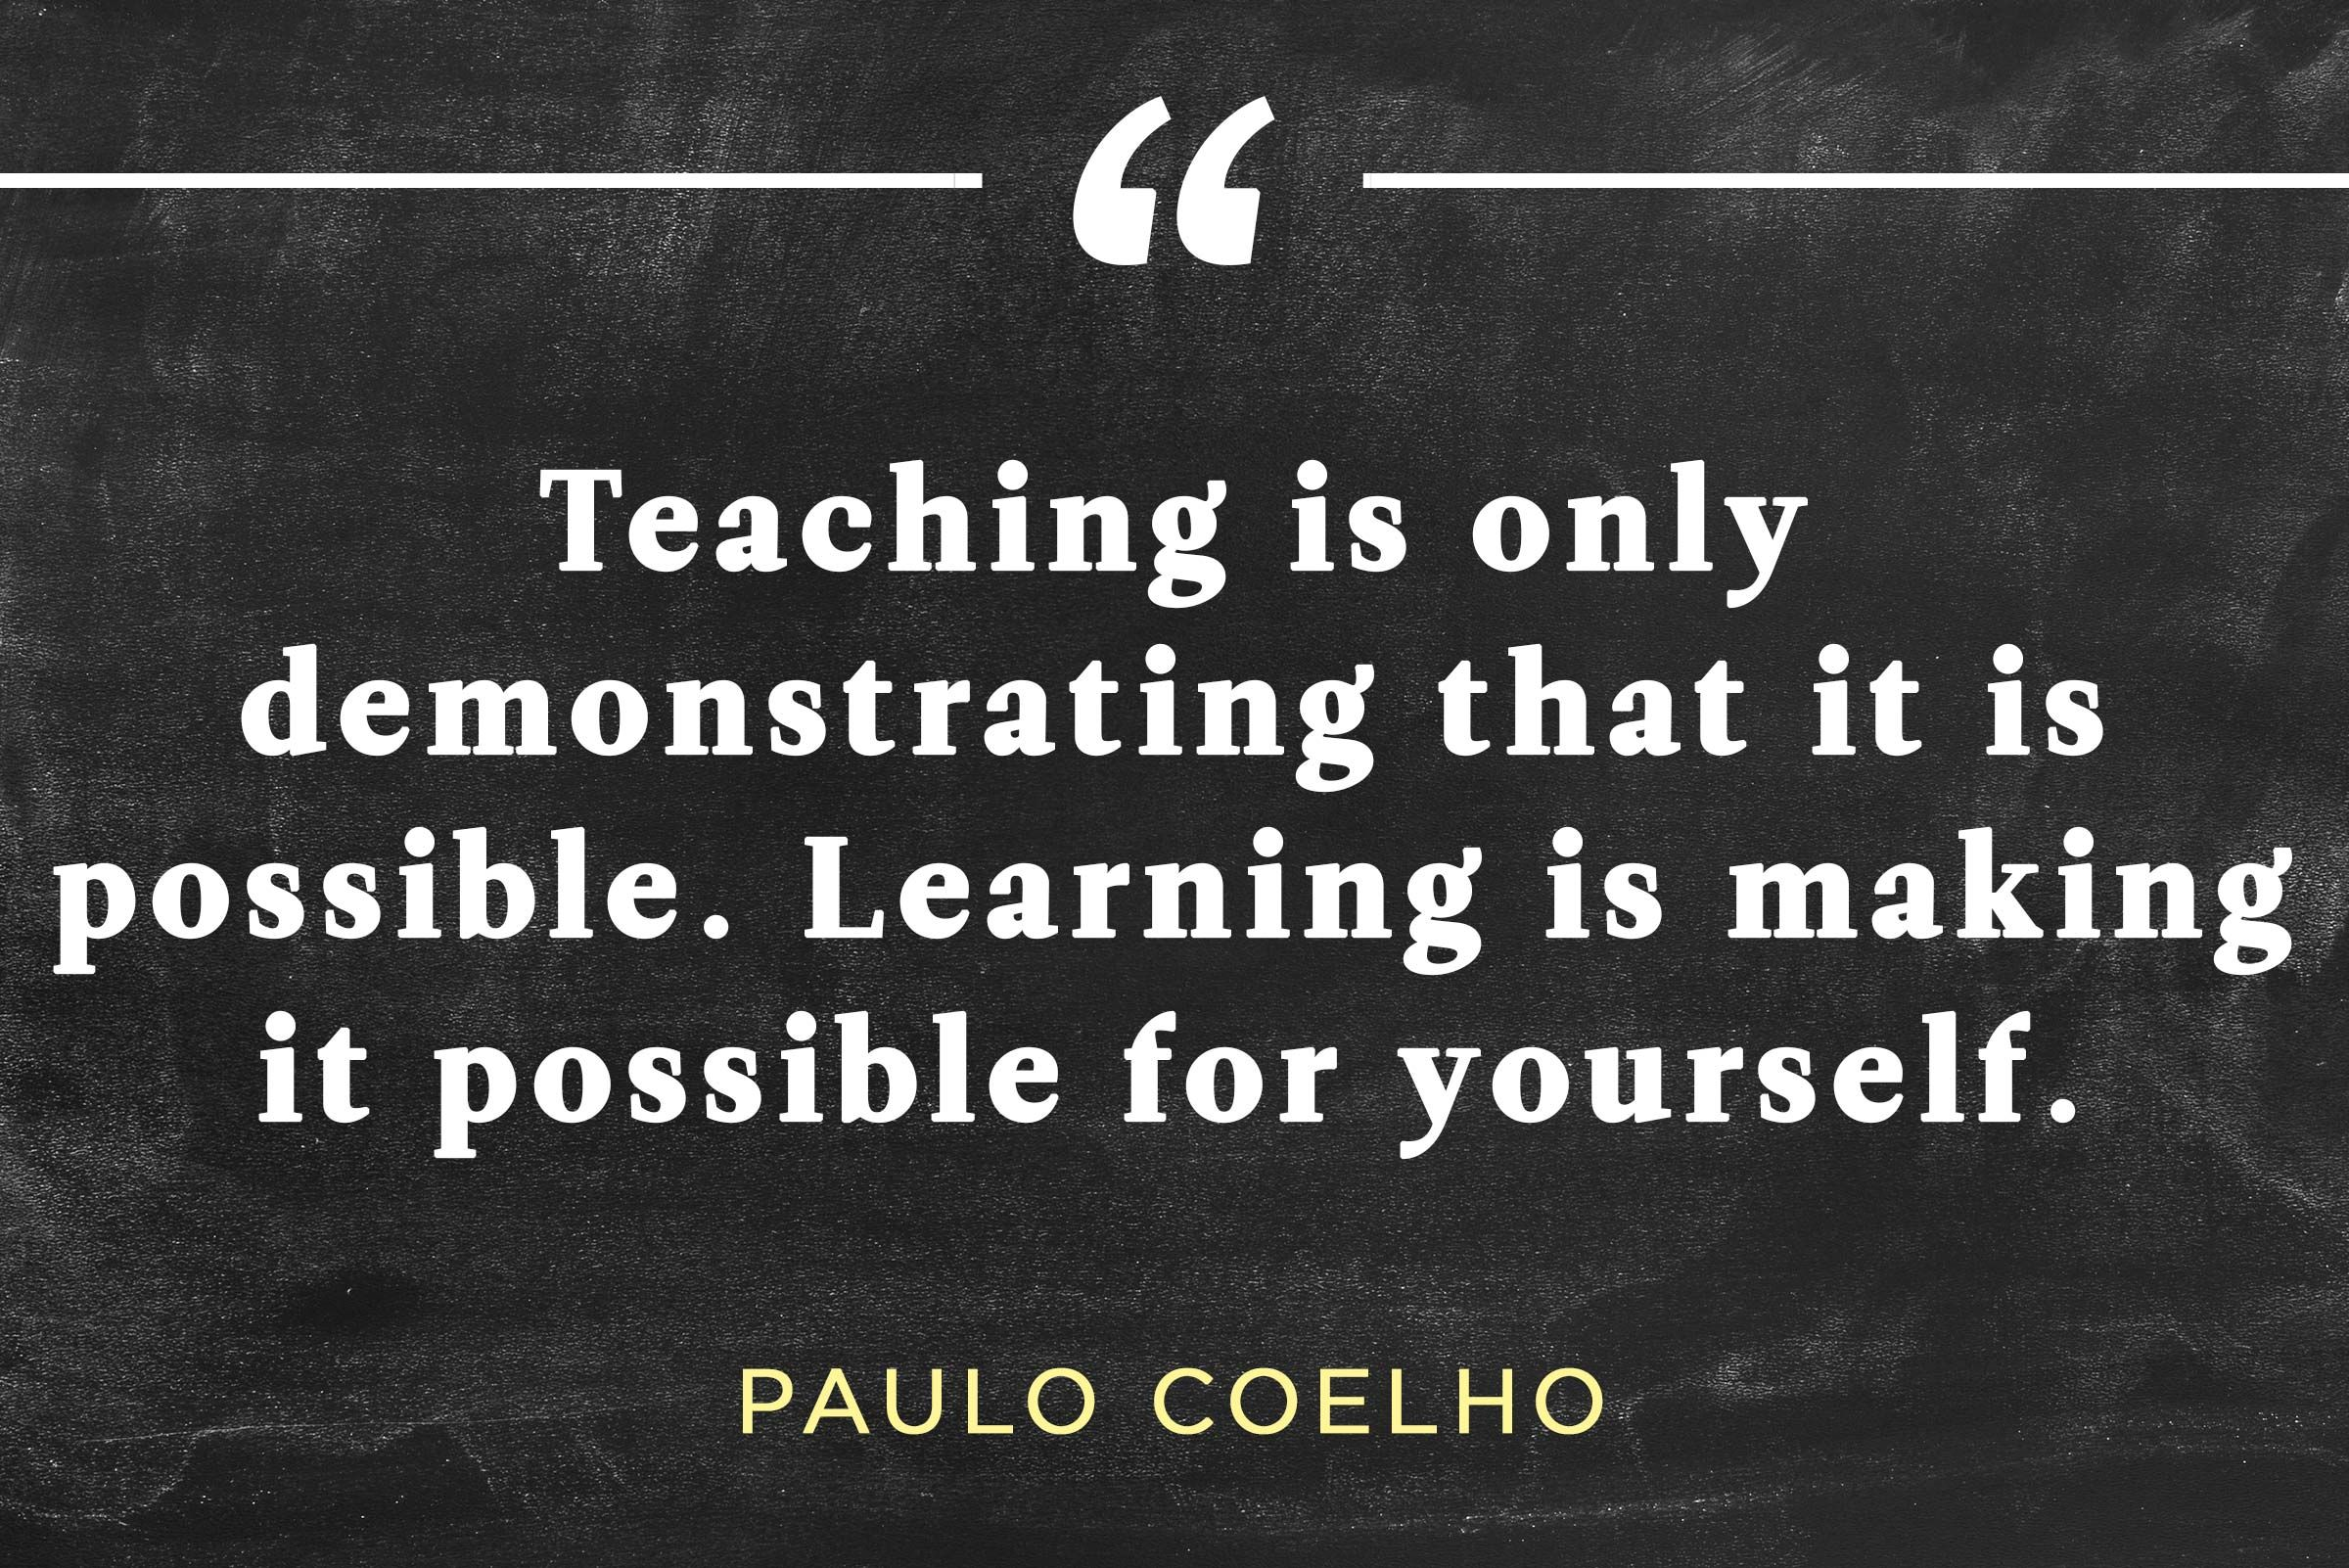 The 34 Most Inspirational Quotes About Teaching | Teacher quotes ...